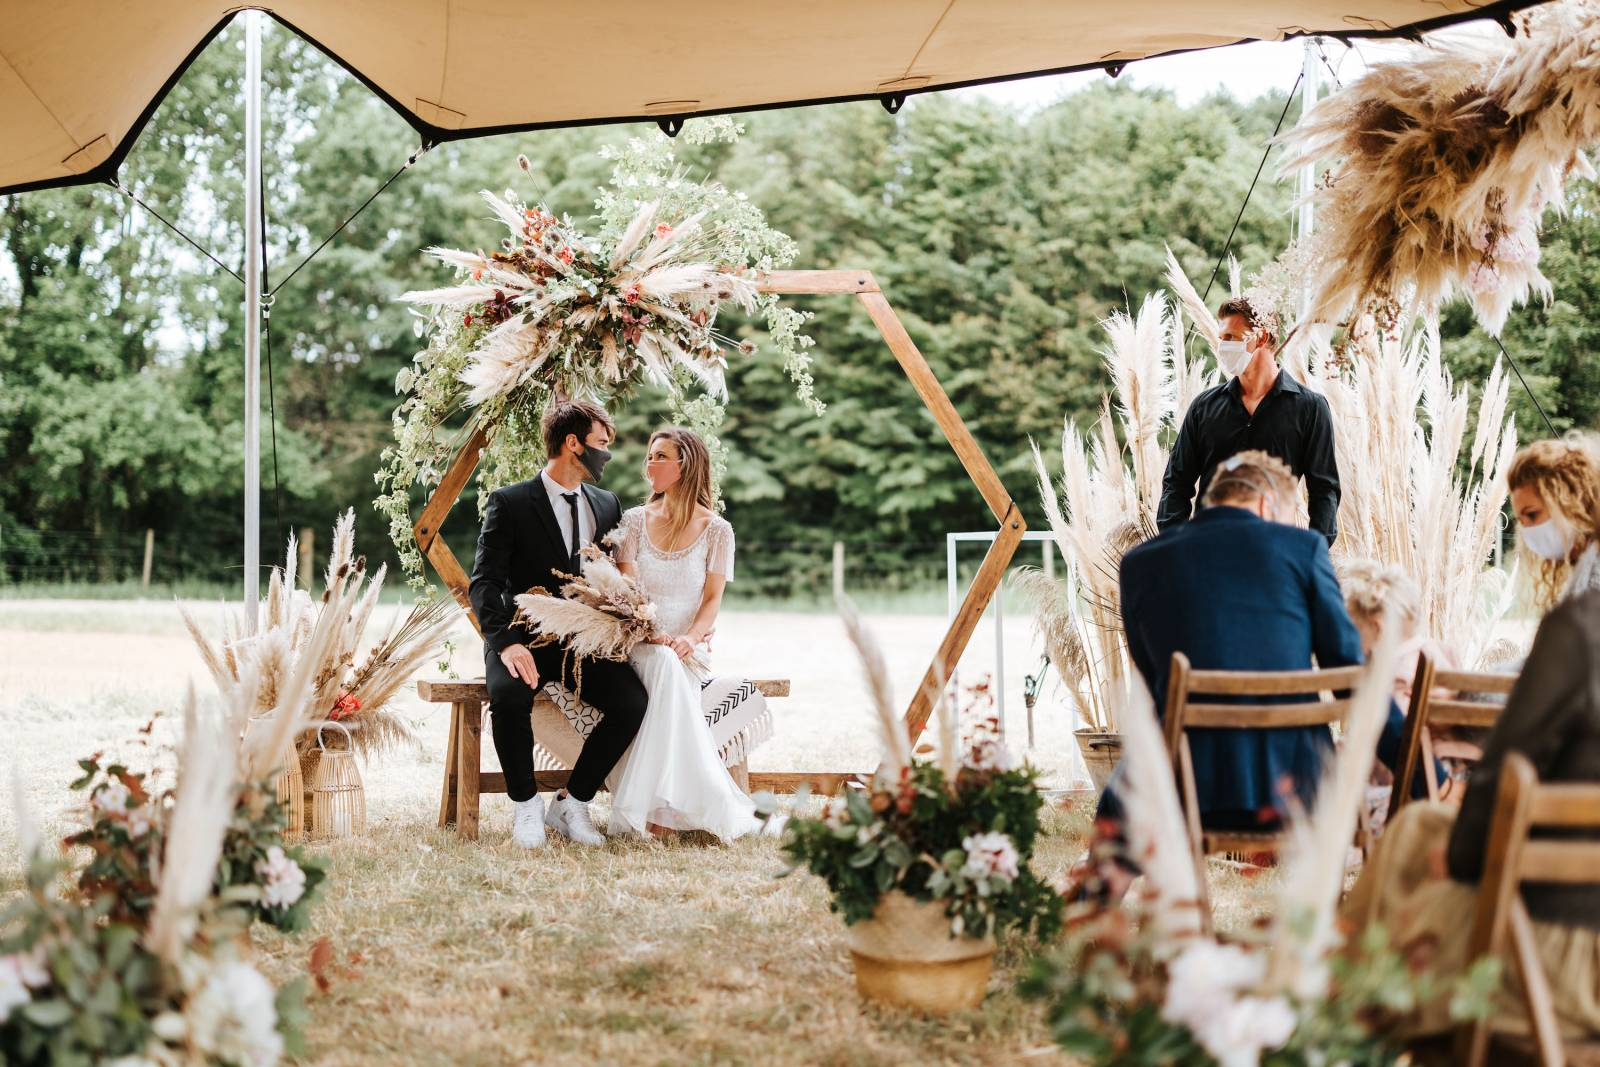 Ginger & Ginder - Your Time to Smile (c) Stijn Willems - House of Weddings